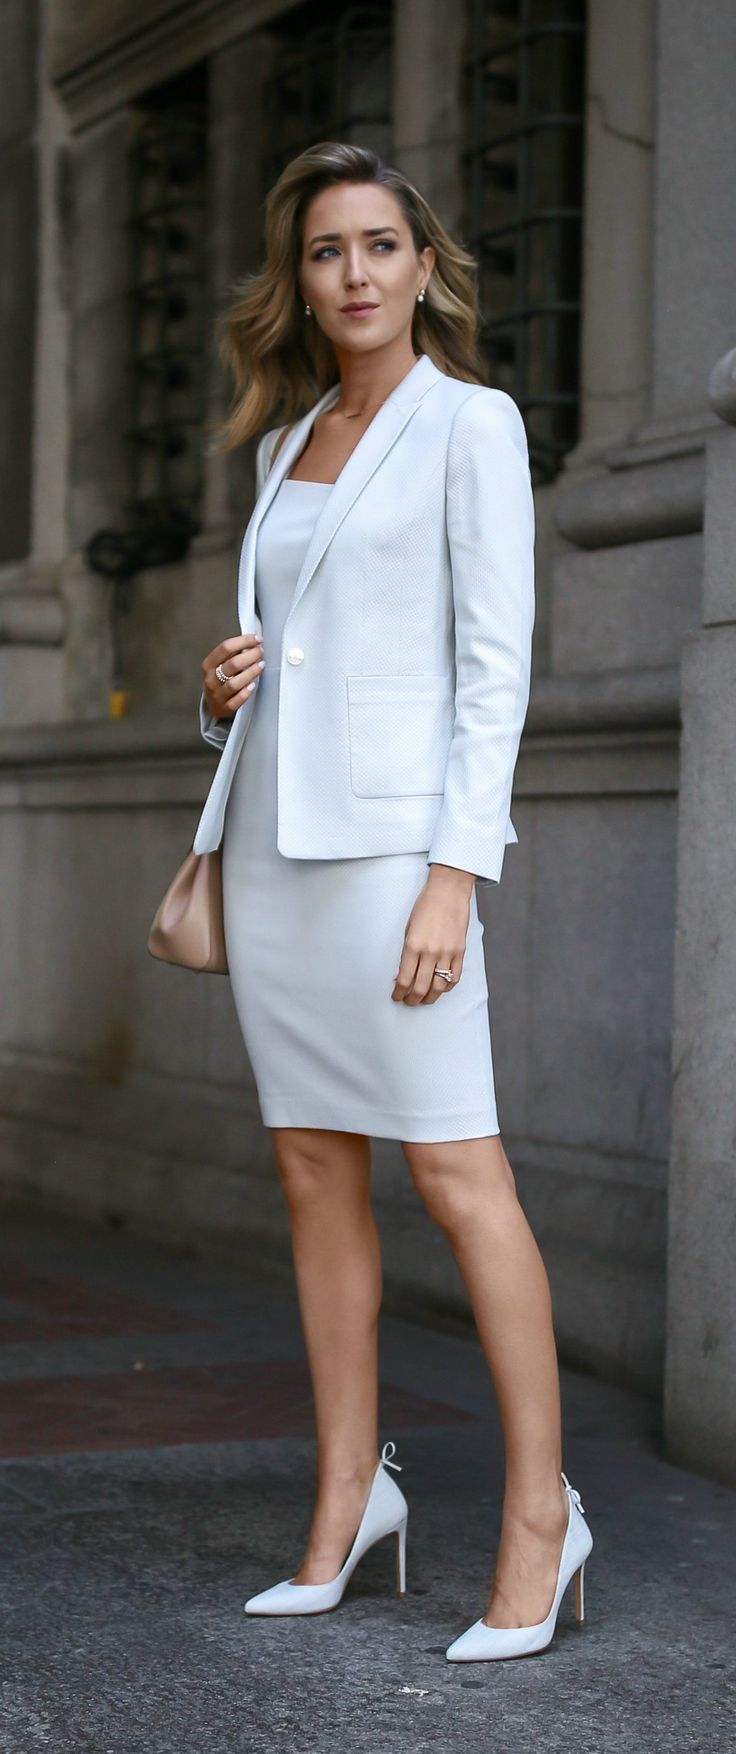 what to wear to a summer business formal job interview // pale robin's egg blue suit // sleeveless sheath dress with asymmetrical hemline // matching suit jacket // coordinating pastel blue classic pointed toe pumps with bow back